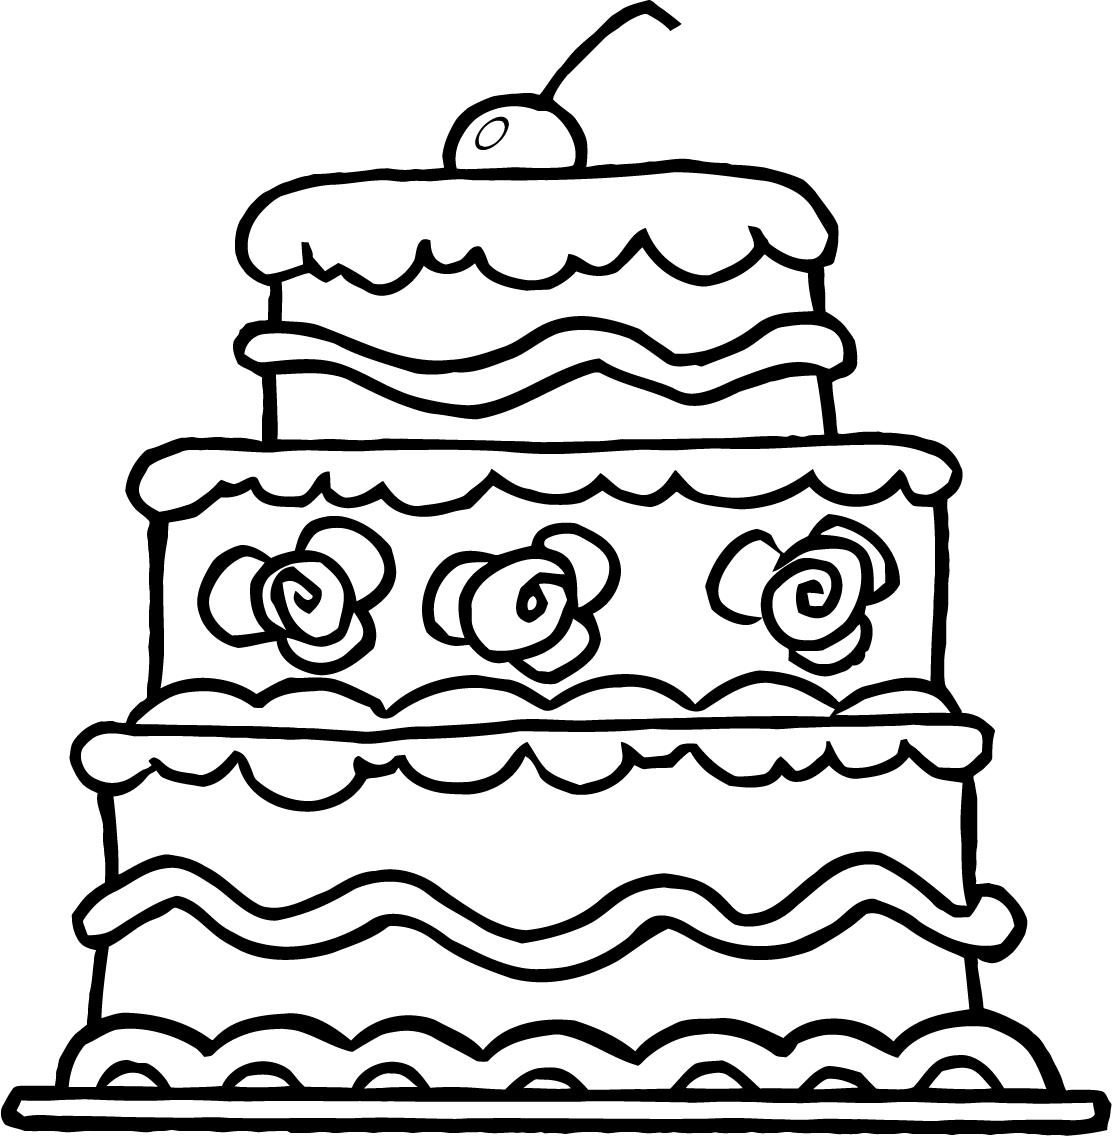 cake coloring image cake coloring pages to download and print for free cake image coloring